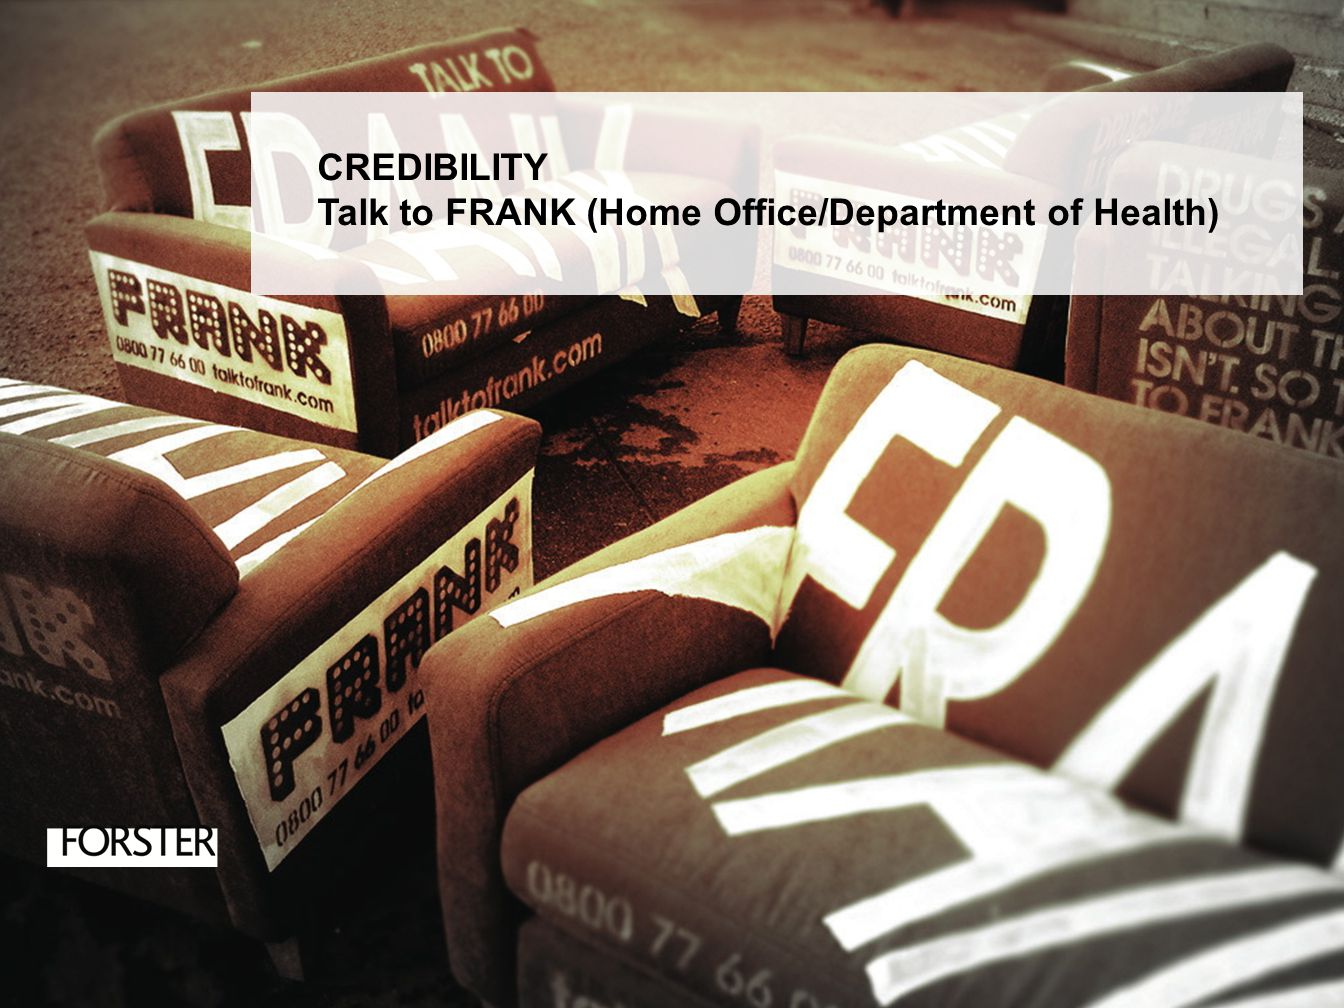 CREDIBILITY Talk to FRANK (Home Office/Department of Health)